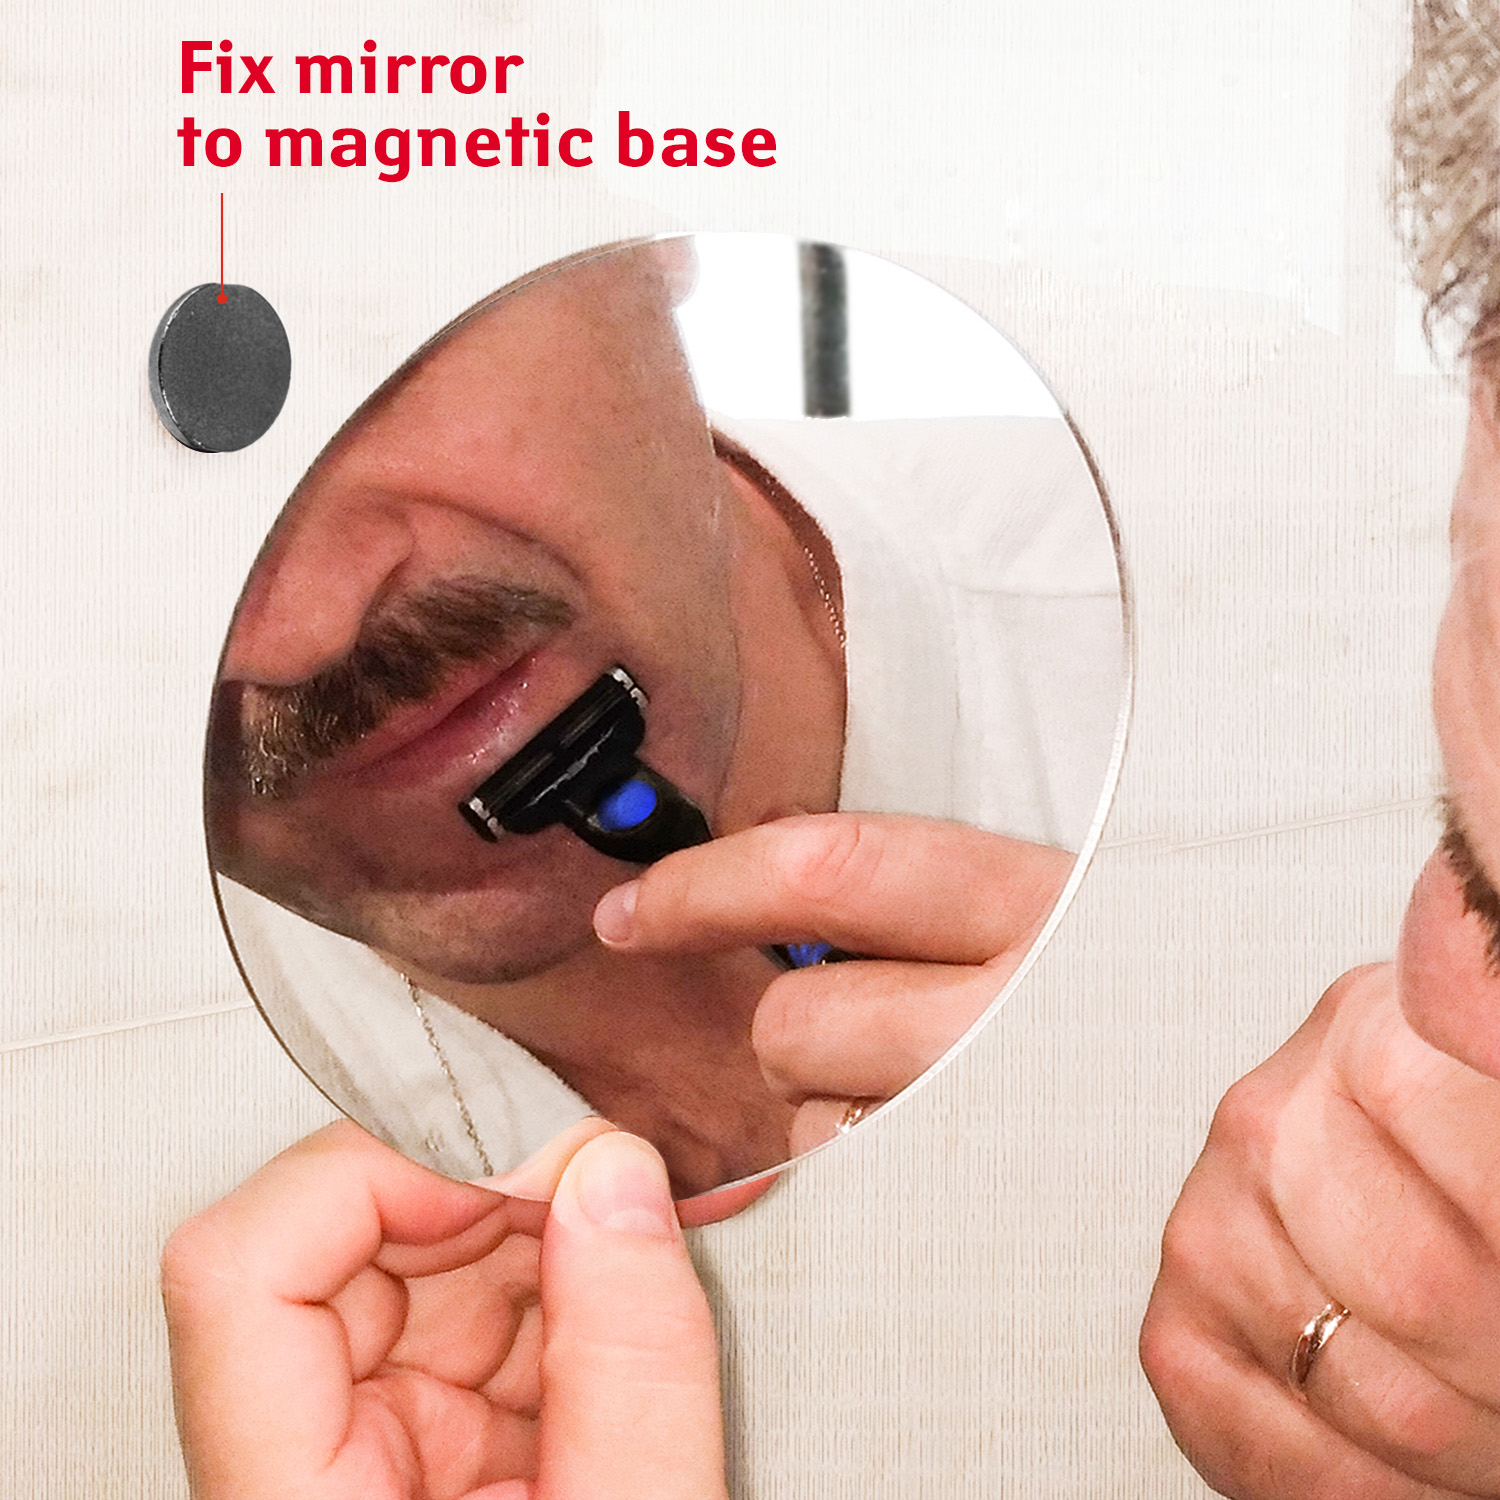 Change mirror on magnetic base